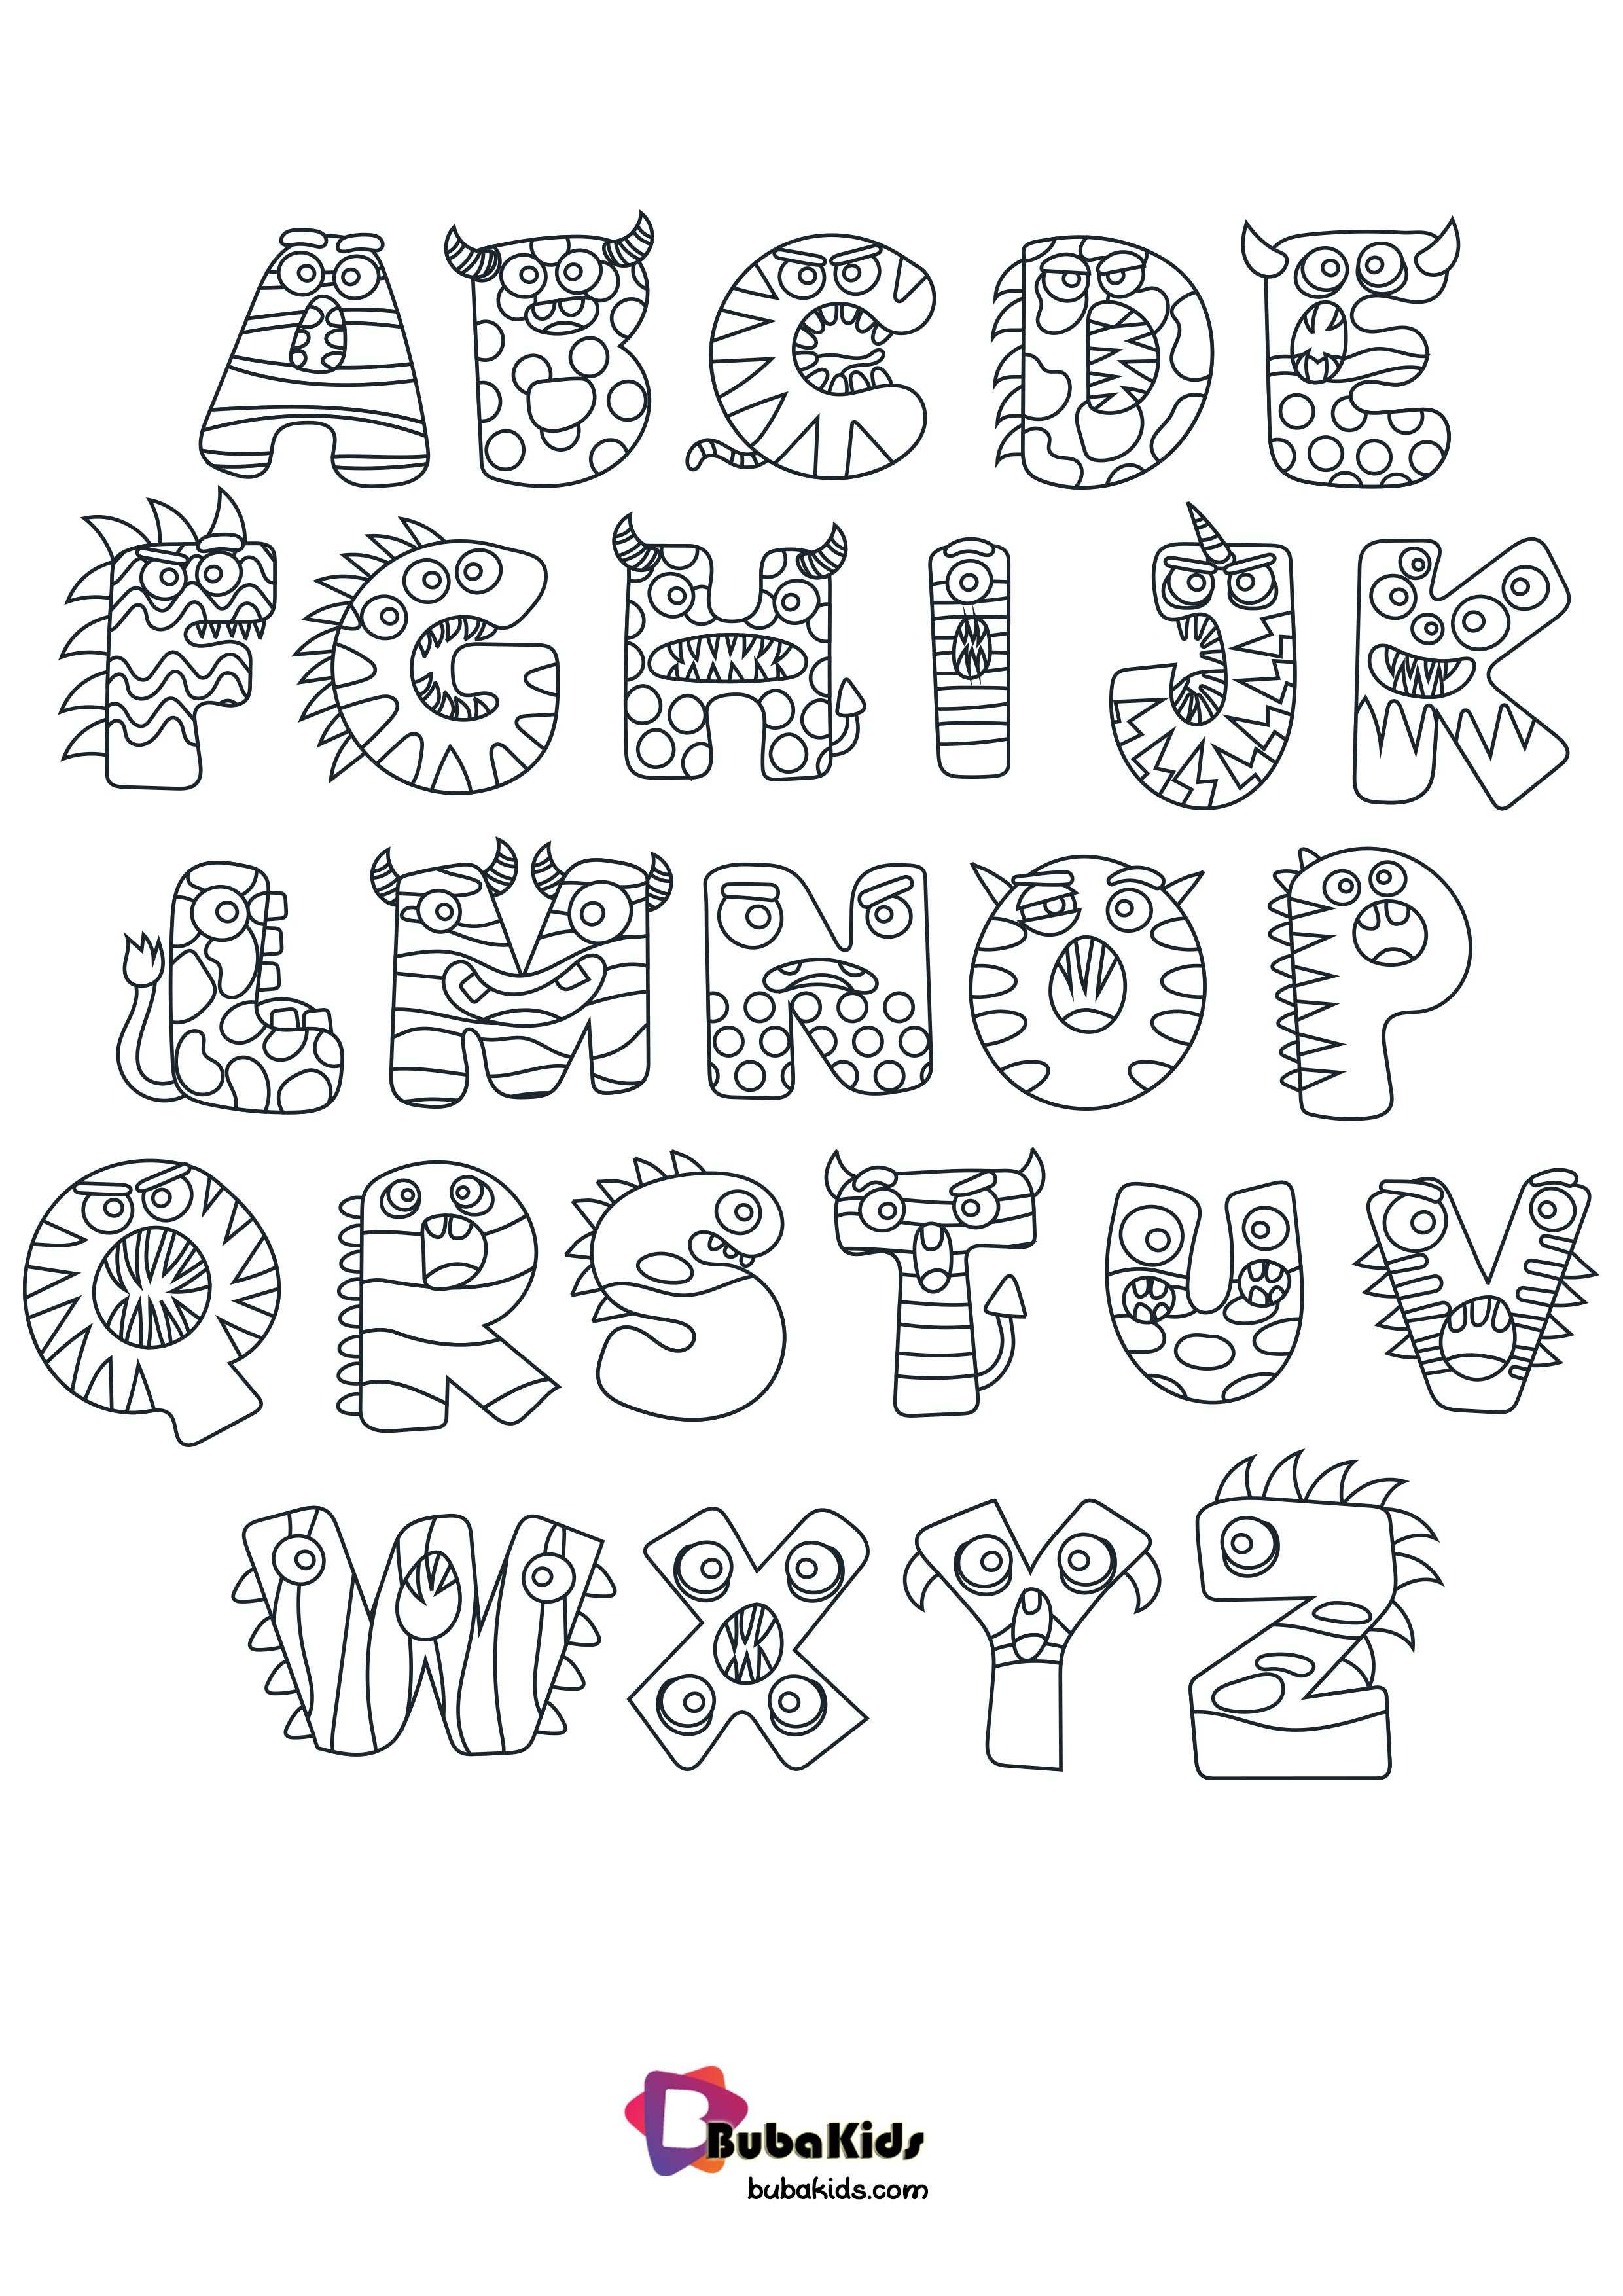 Halloween Preschool Alphabet Coloring Page Bubakids Com Preschoolalphabet Preschoolco Alphabet Coloring Free Halloween Coloring Pages Alphabet Coloring Pages